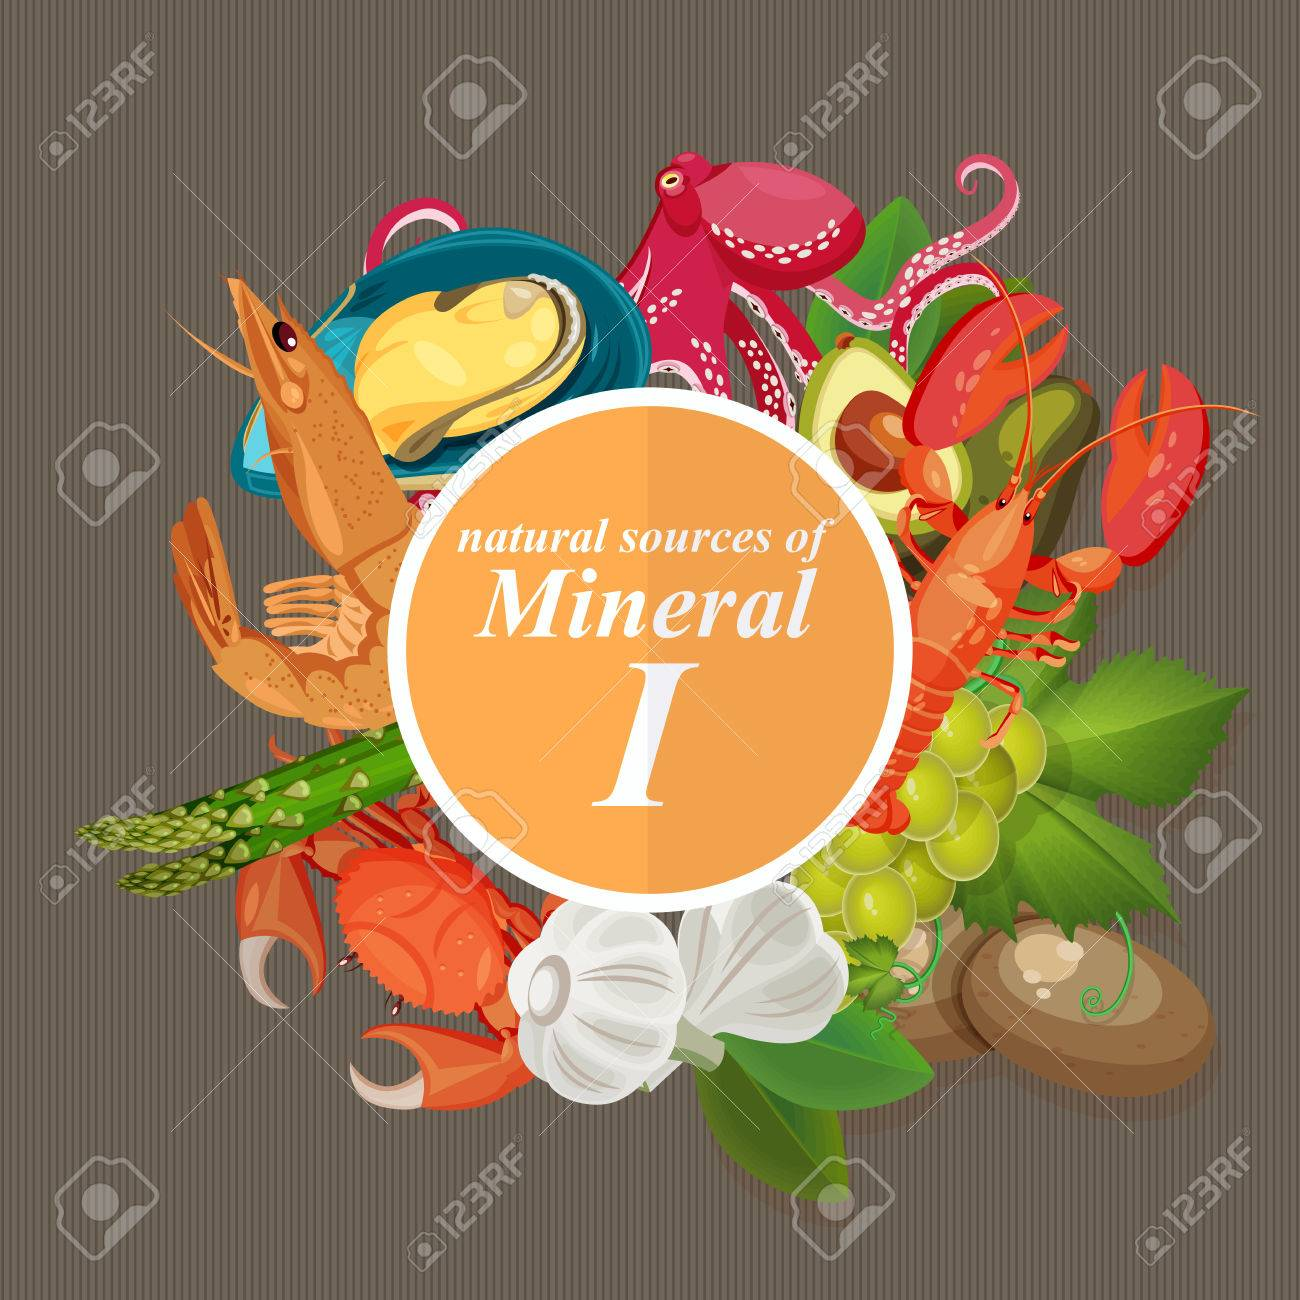 Groups of healthy fruit, vegetables, meat, fish and dairy products containing specific vitamins. Iodine. Minerals. - 51018543